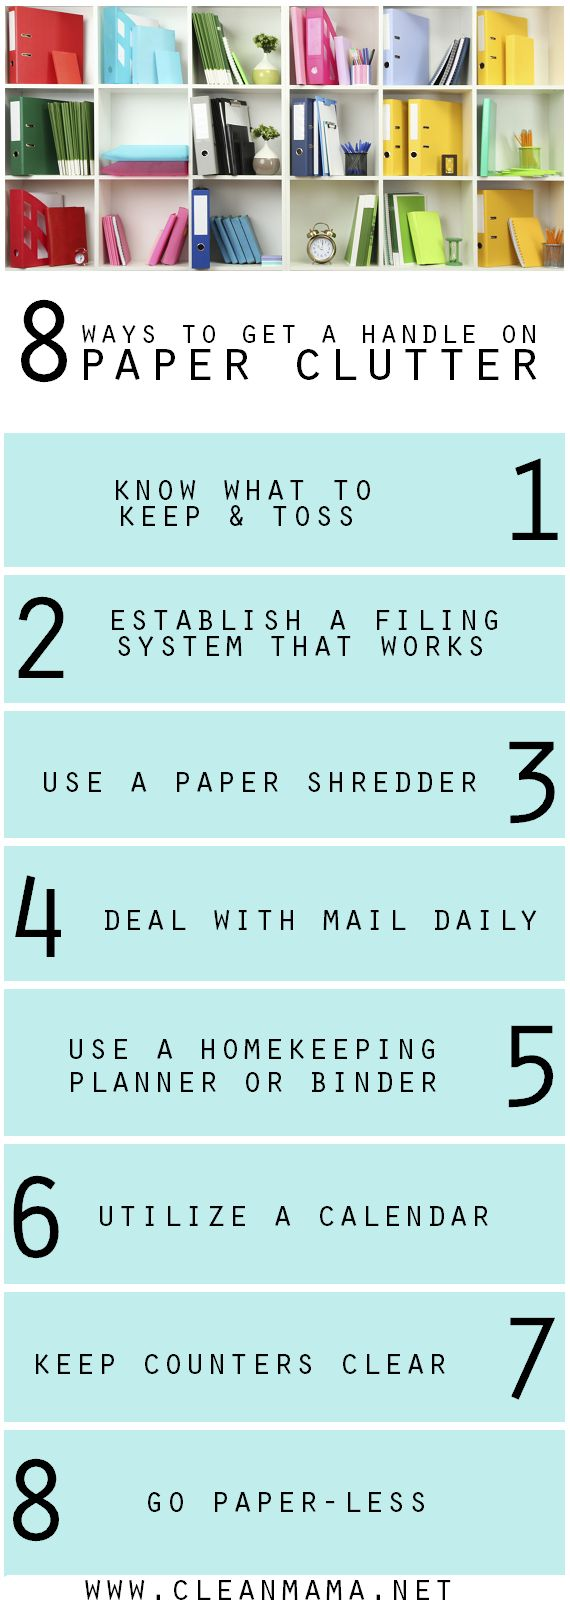 Paper mayhem driving you crazy? Eliminate the piles and flurries of paper with these easy tips.